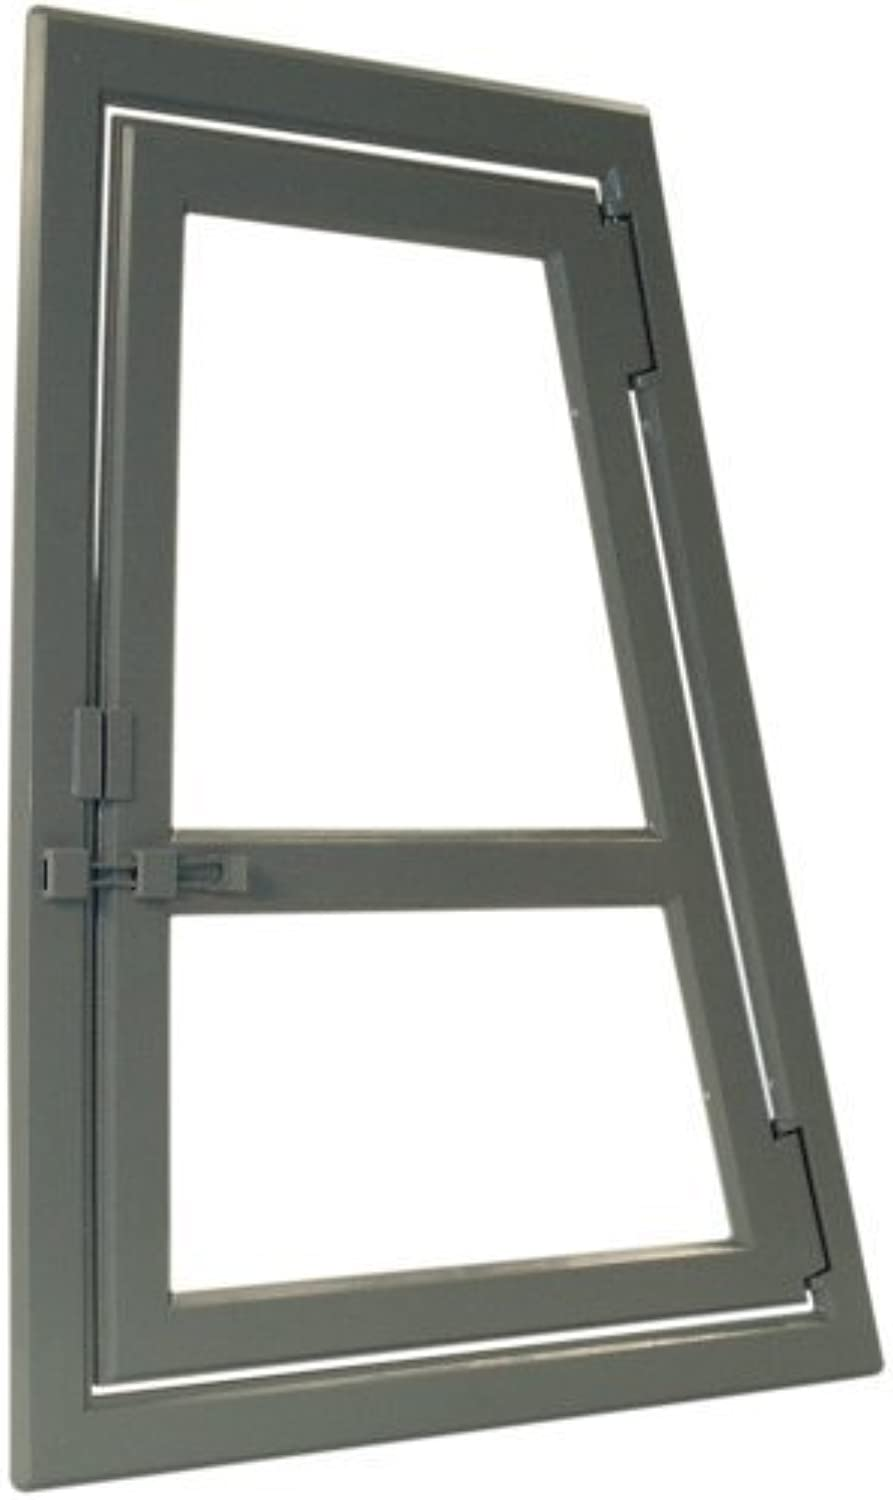 Ideal Pet Products 7.25by14.5Inch Pet Passage Screen Door by Ideal Pet Products